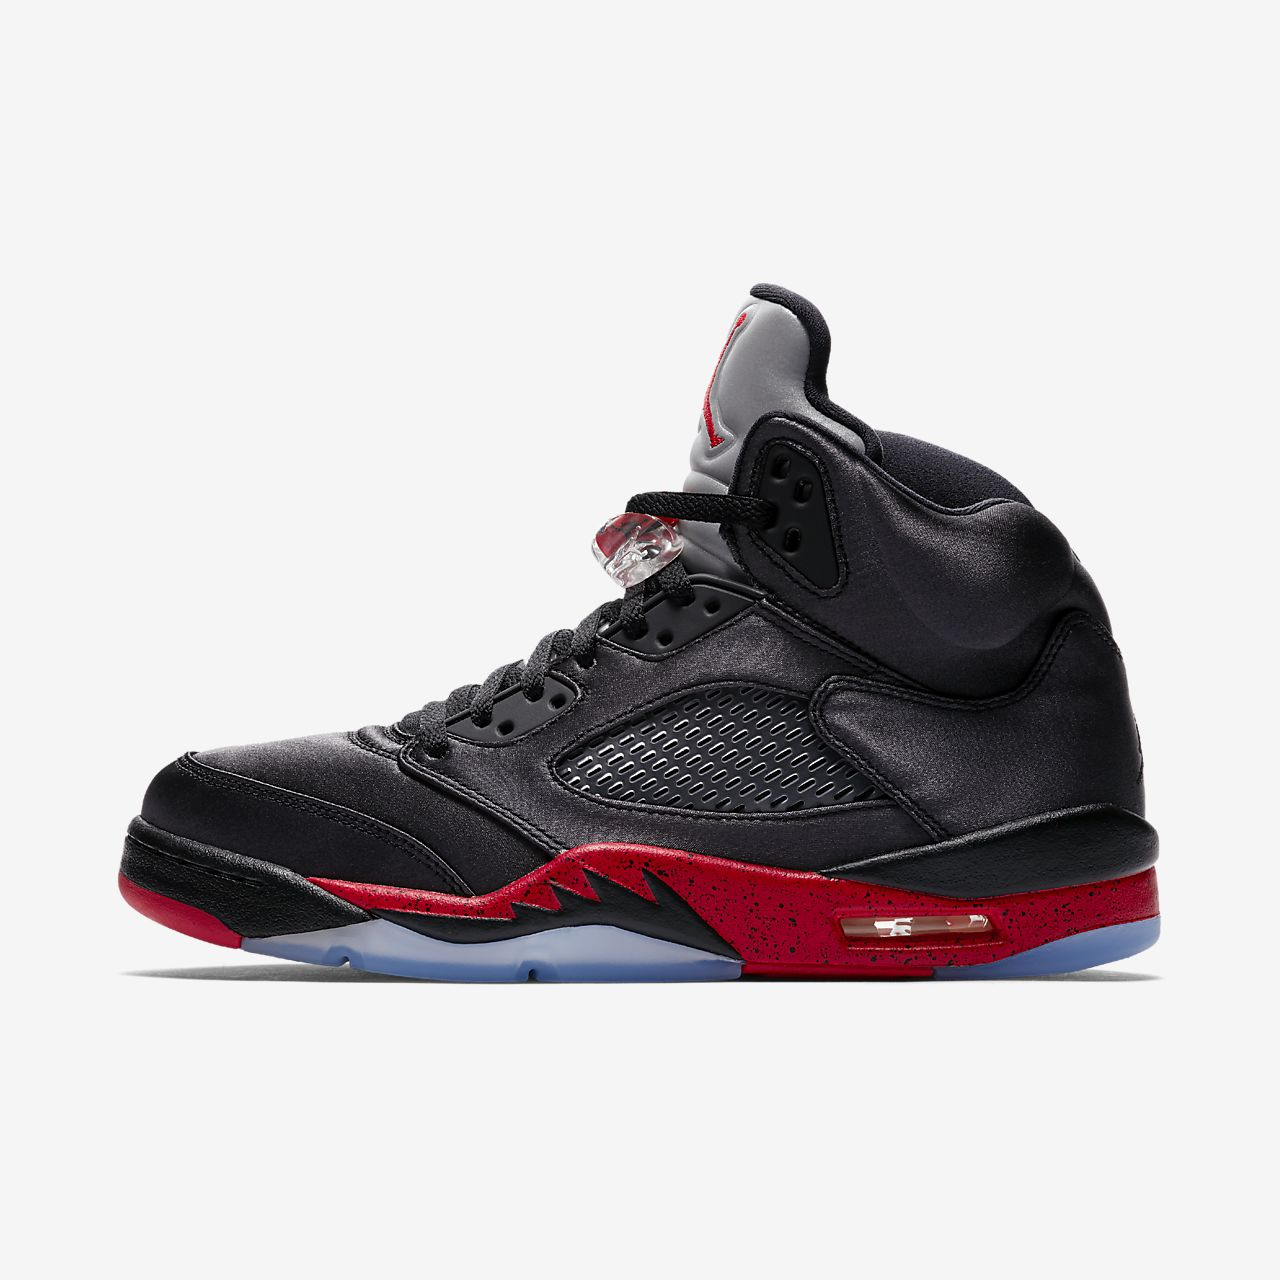 premium selection f118f d3cc6 Air Jordan 5 Retro